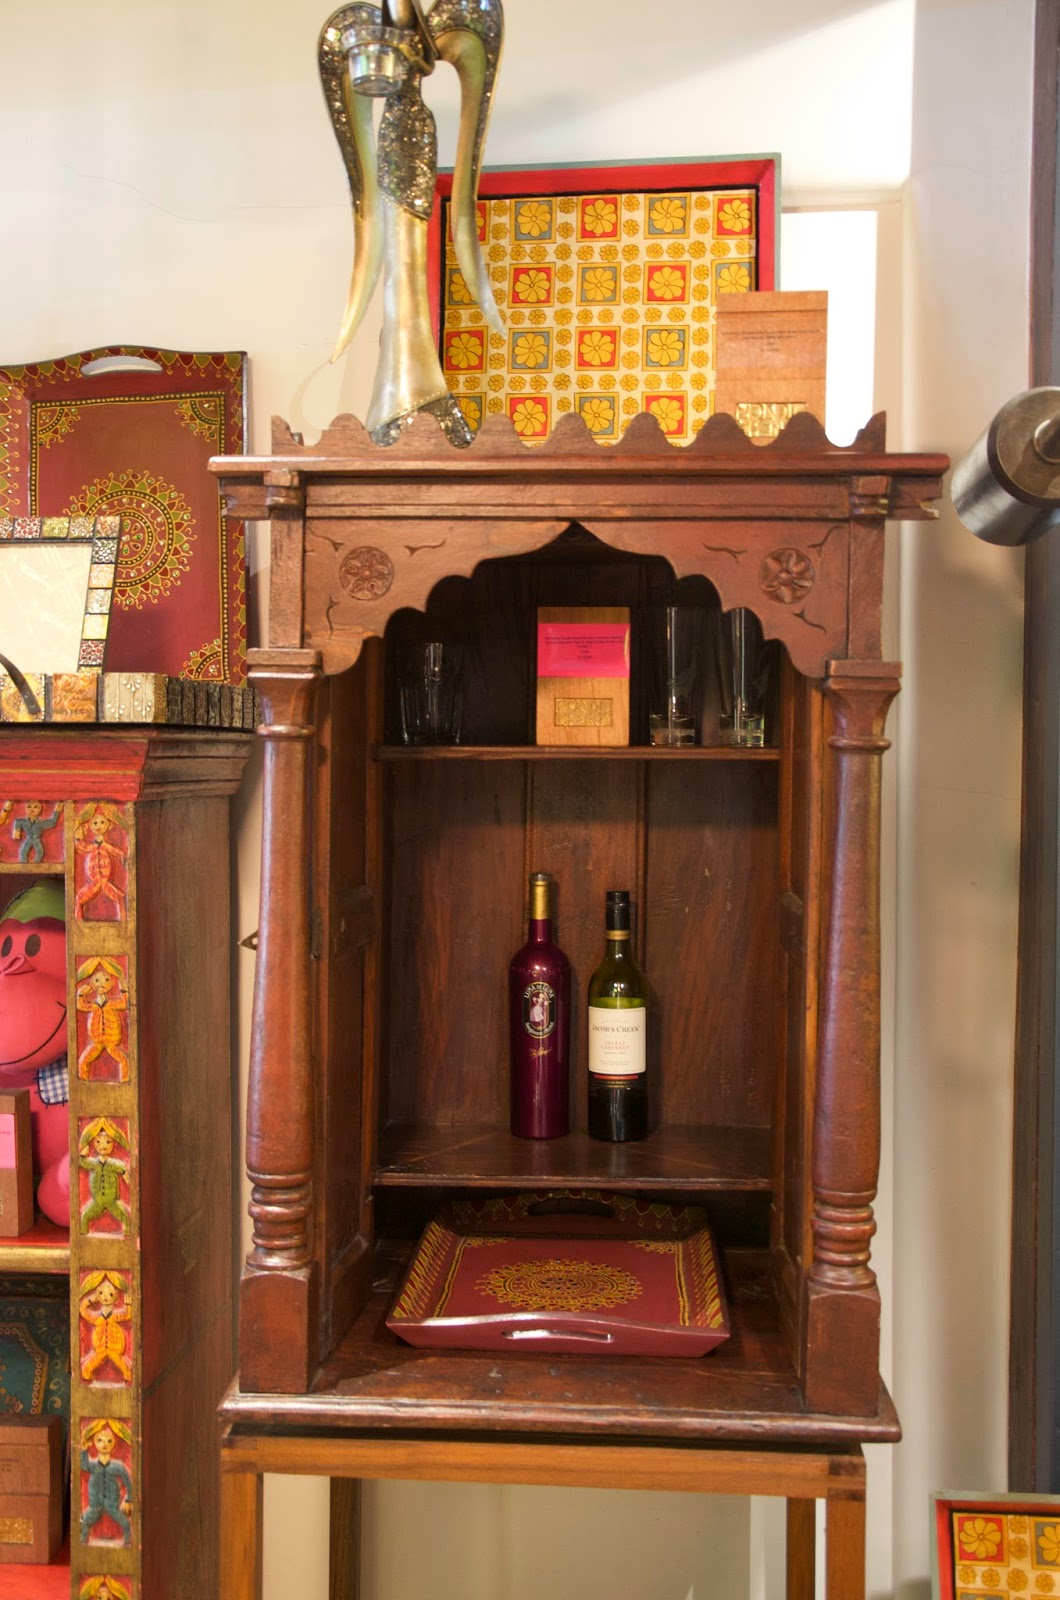 I love this old shrine that has shelves added so it can be used as a  mini-drinks or medicine cabinet. - BombayJules: Pondicherry (Mumbai) - New Antiques & Interiors Find!